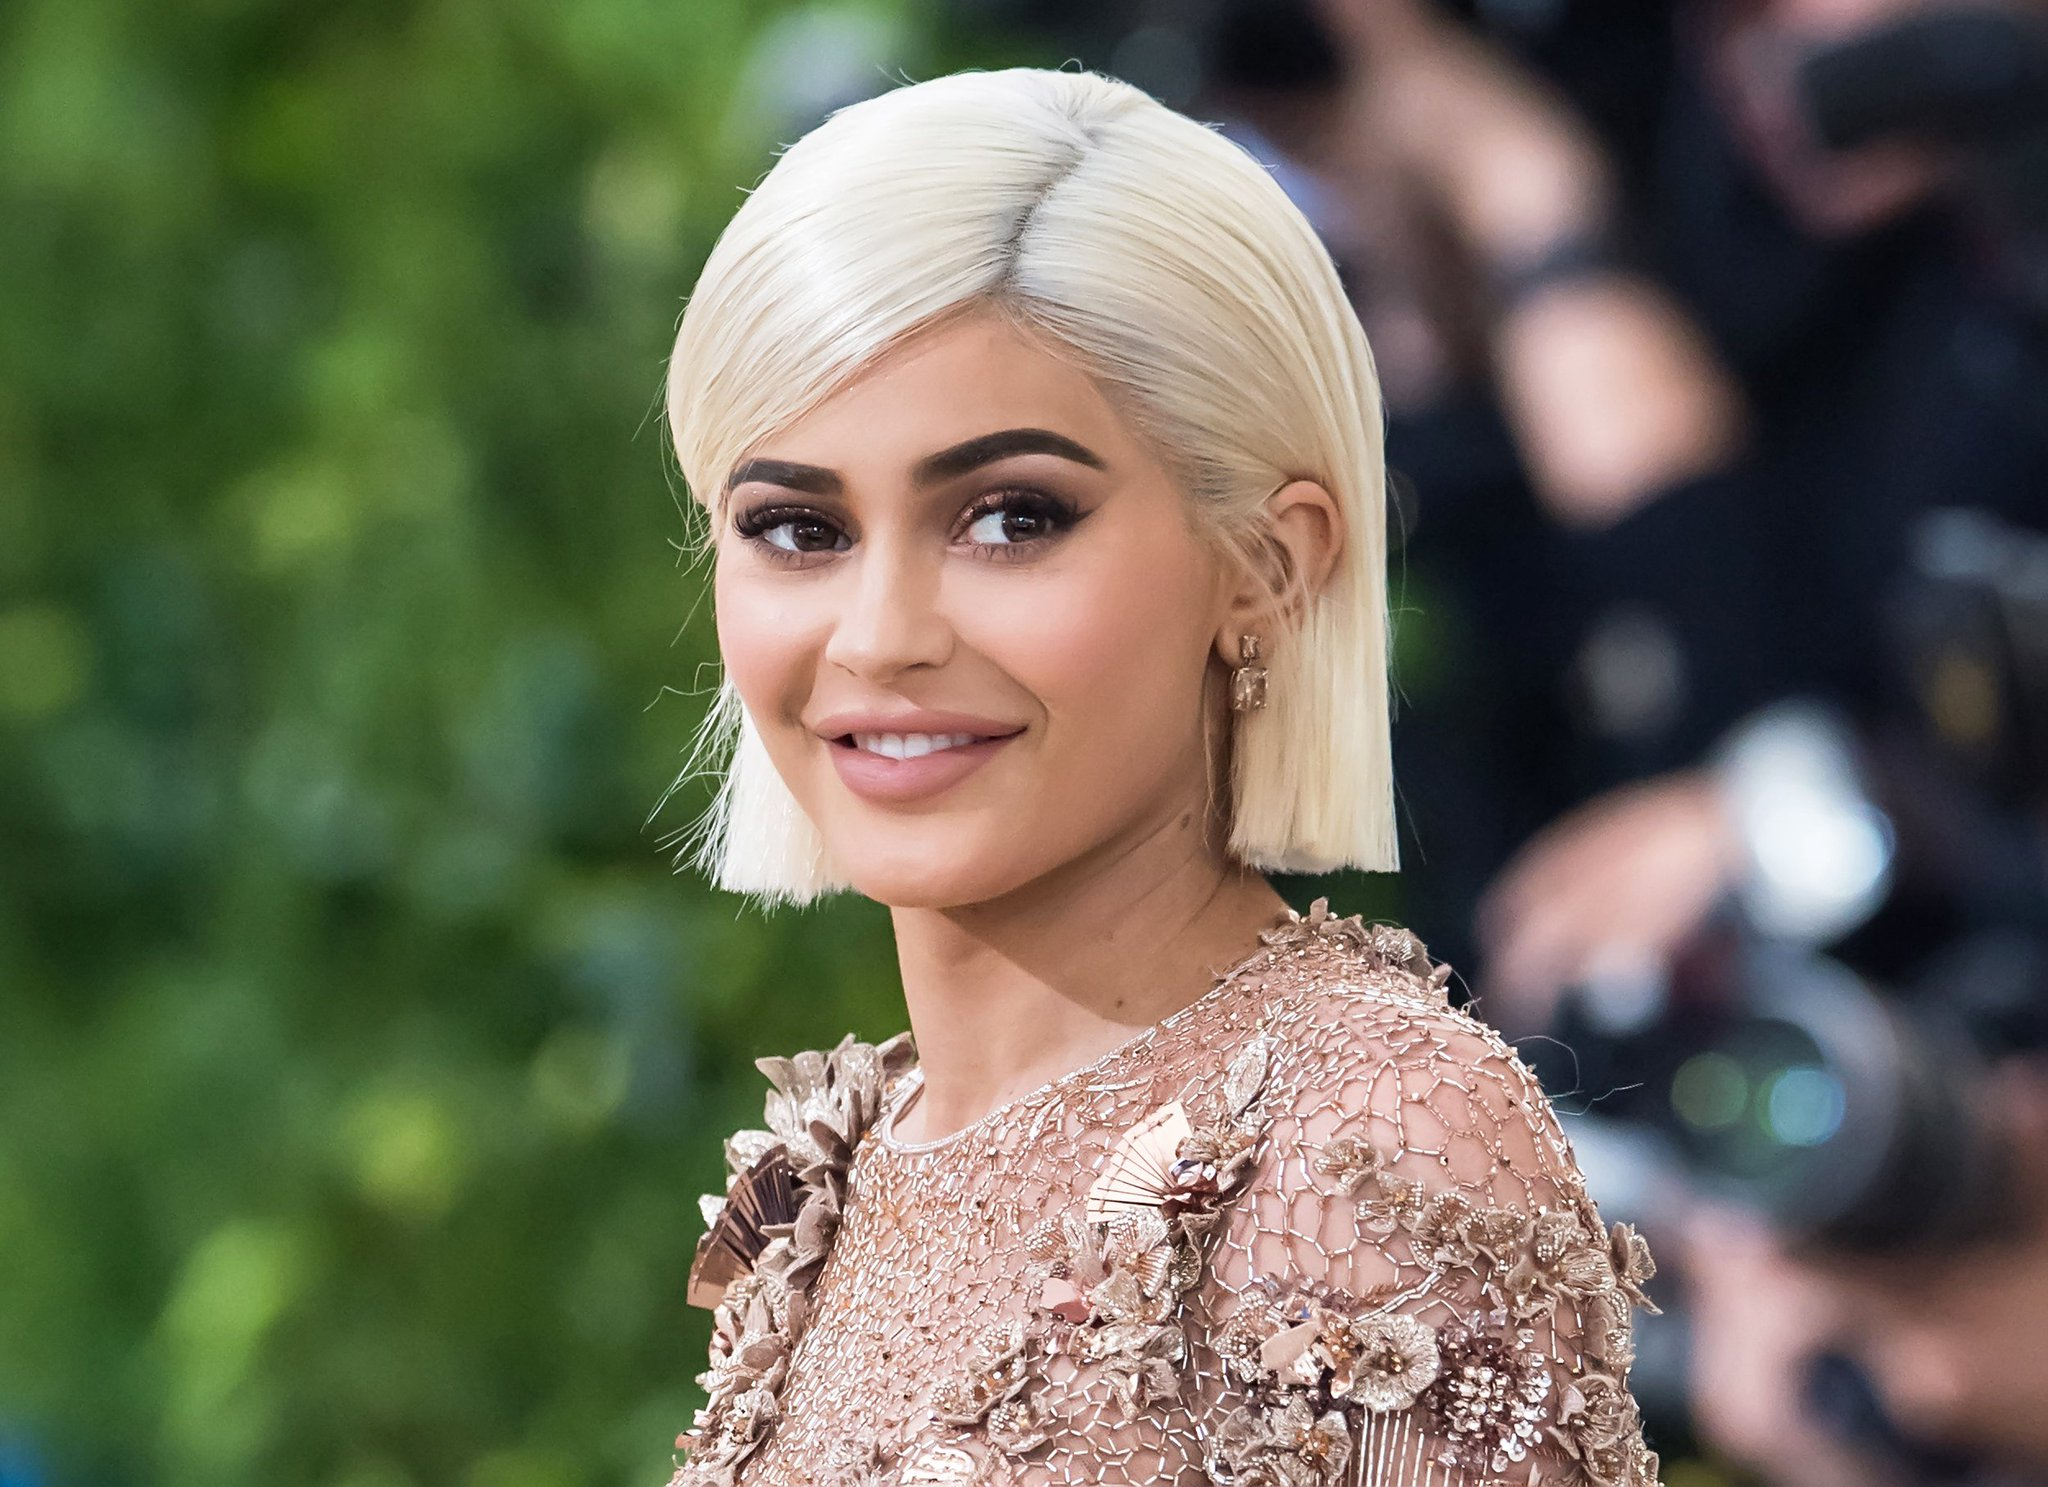 Kylie Jenner looks exactly like her mom with this new pixie. Watch the exclusive video: https://t.co/rcXfaUJnYa https://t.co/cU20G33XOV